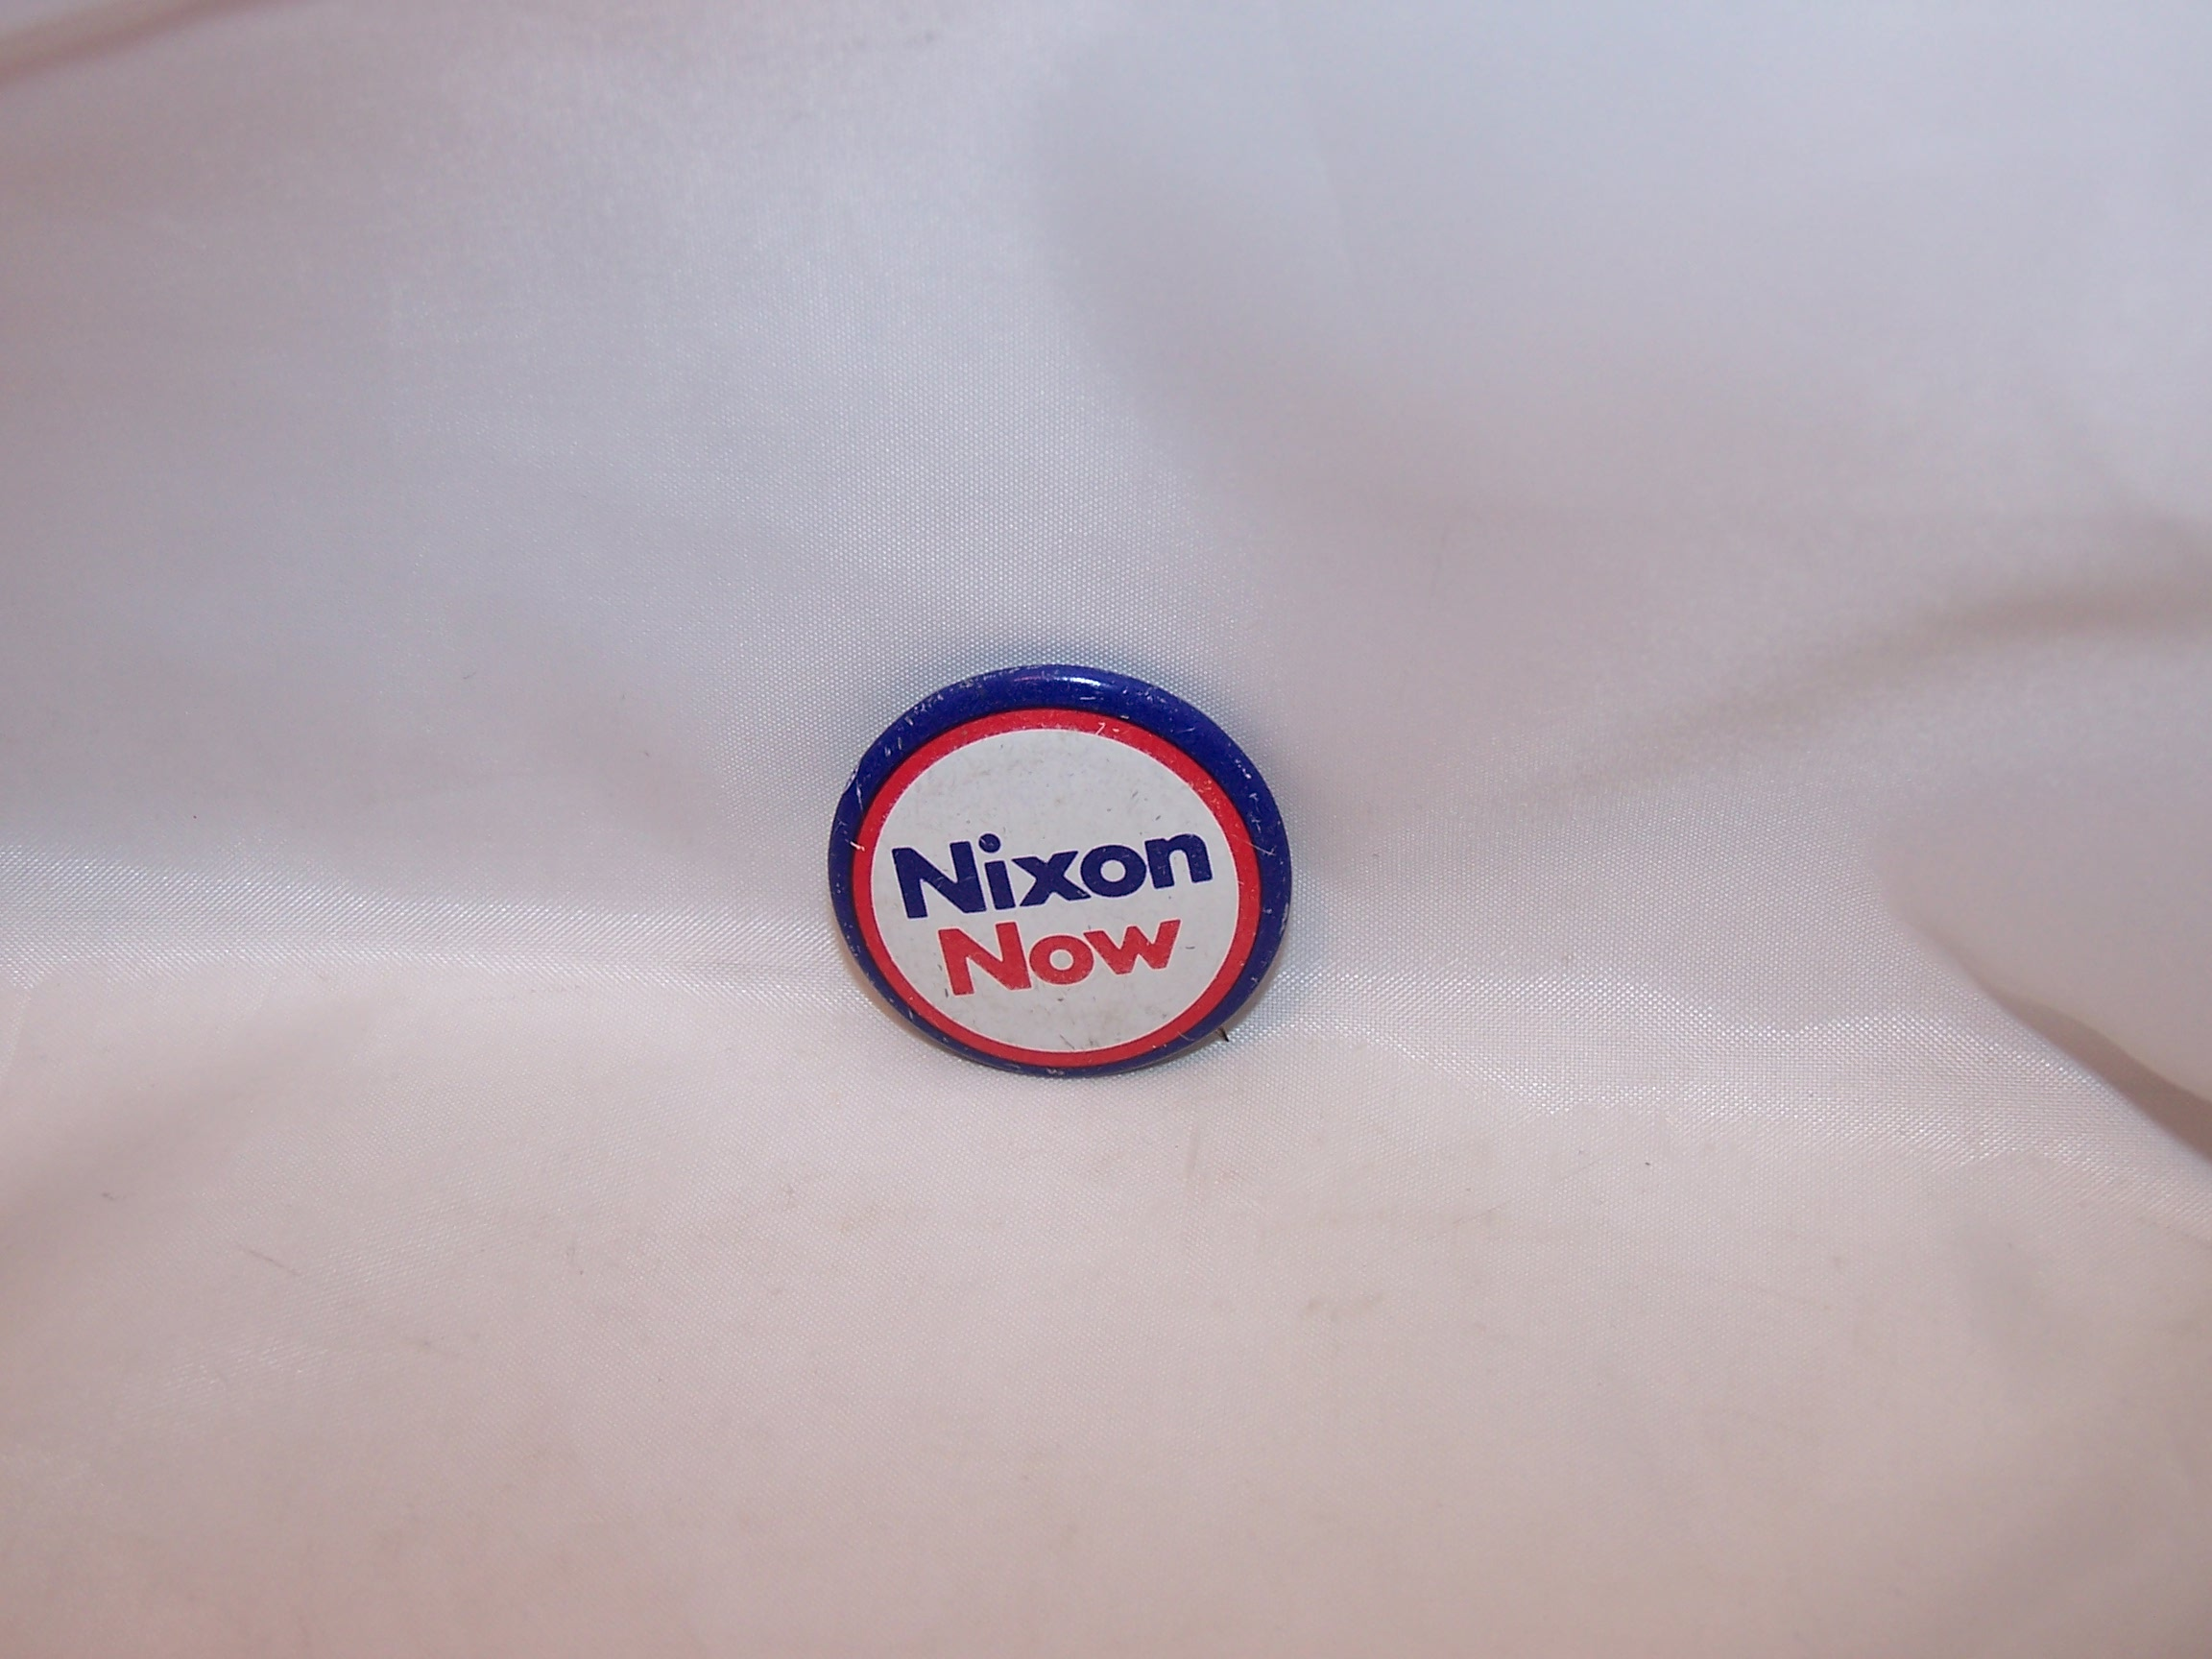 Nixon Now Election Pinback Button, Red, White and Blue